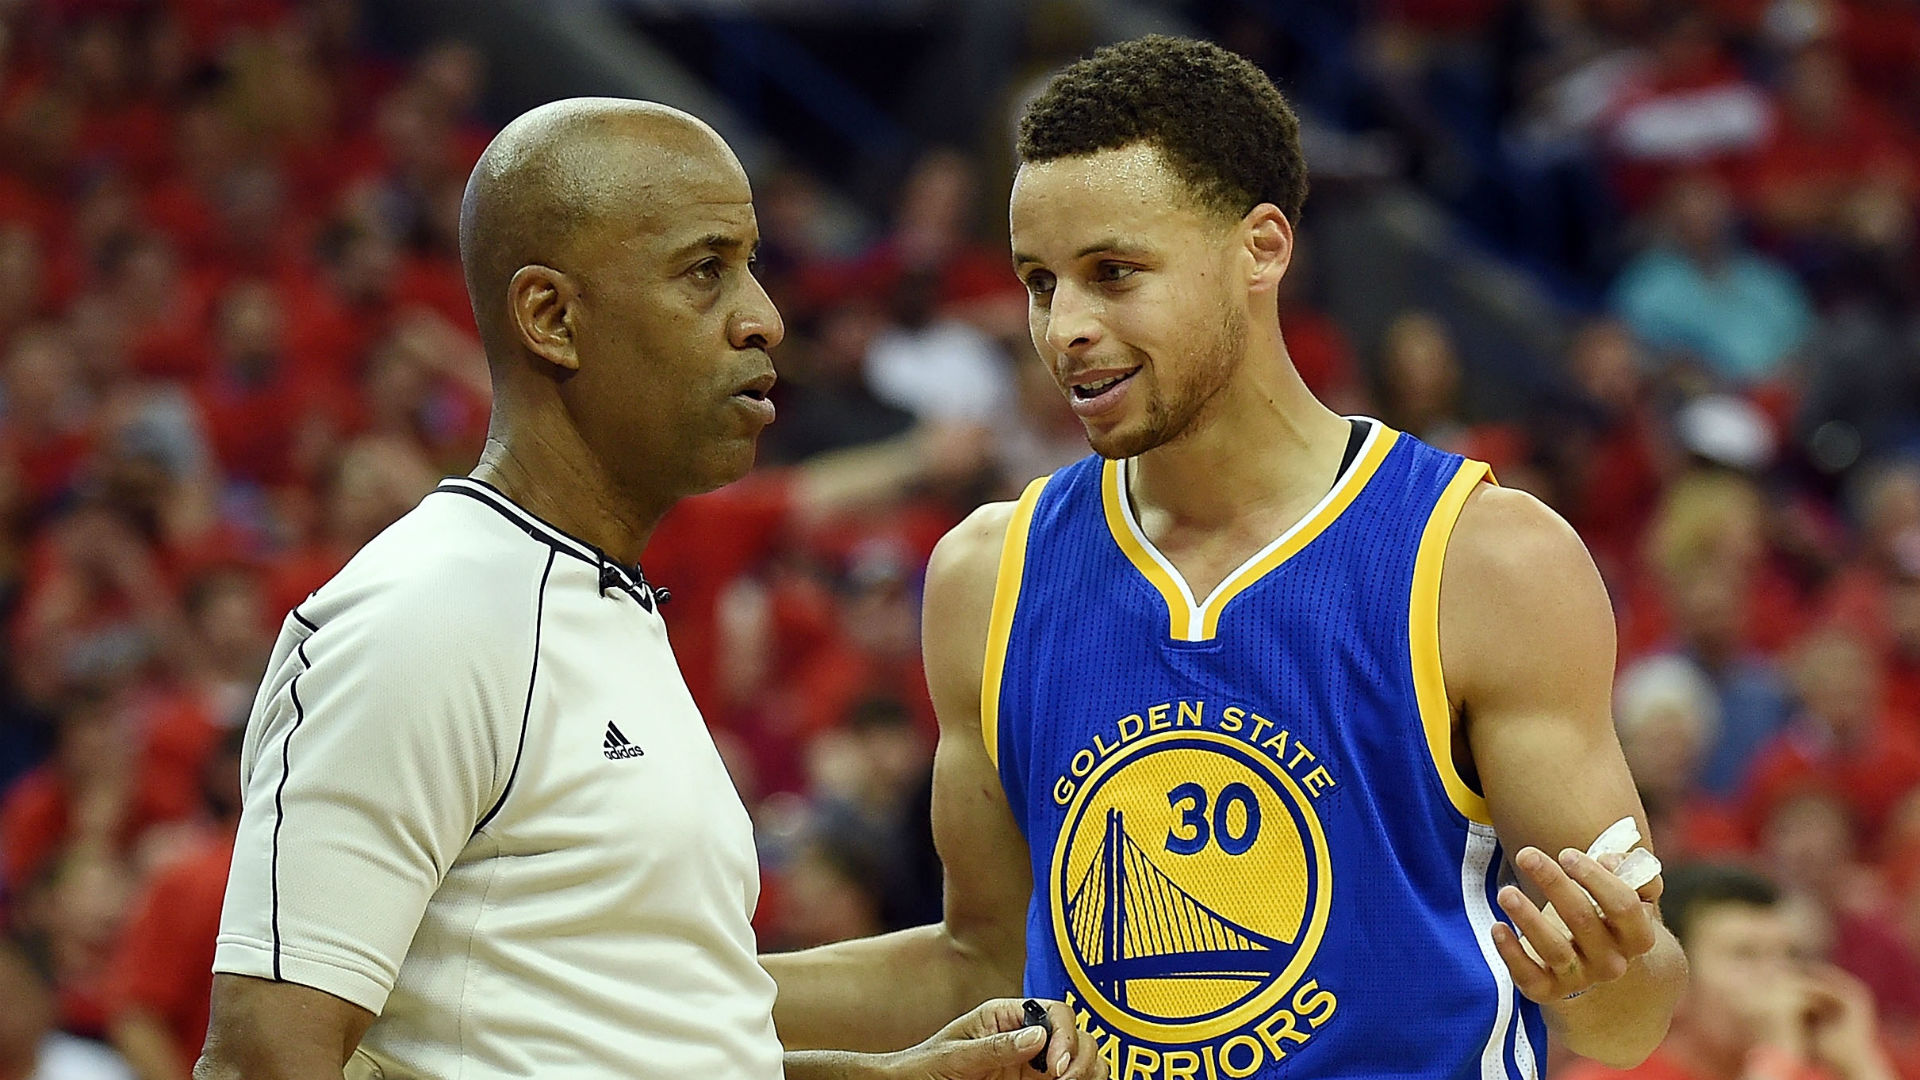 NBA | NBA concedes Stephen Curry was fouled on game-tying 3-pointer | SPORTAL